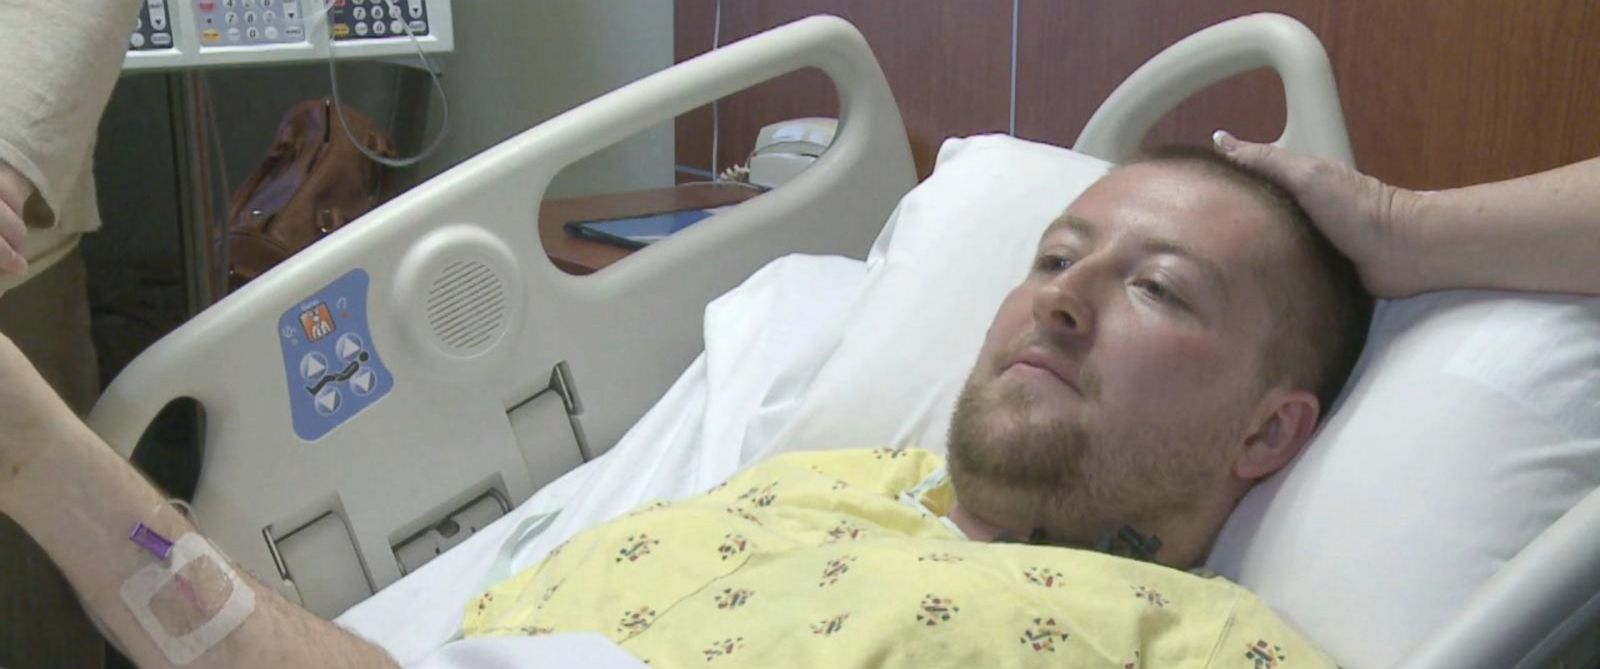 PHOTO: Adam Miller, who was shot four times and survived the deadly shooting at a workplace in Hesston, Kansas, Feb. 25, 2016, spoke about what happened.